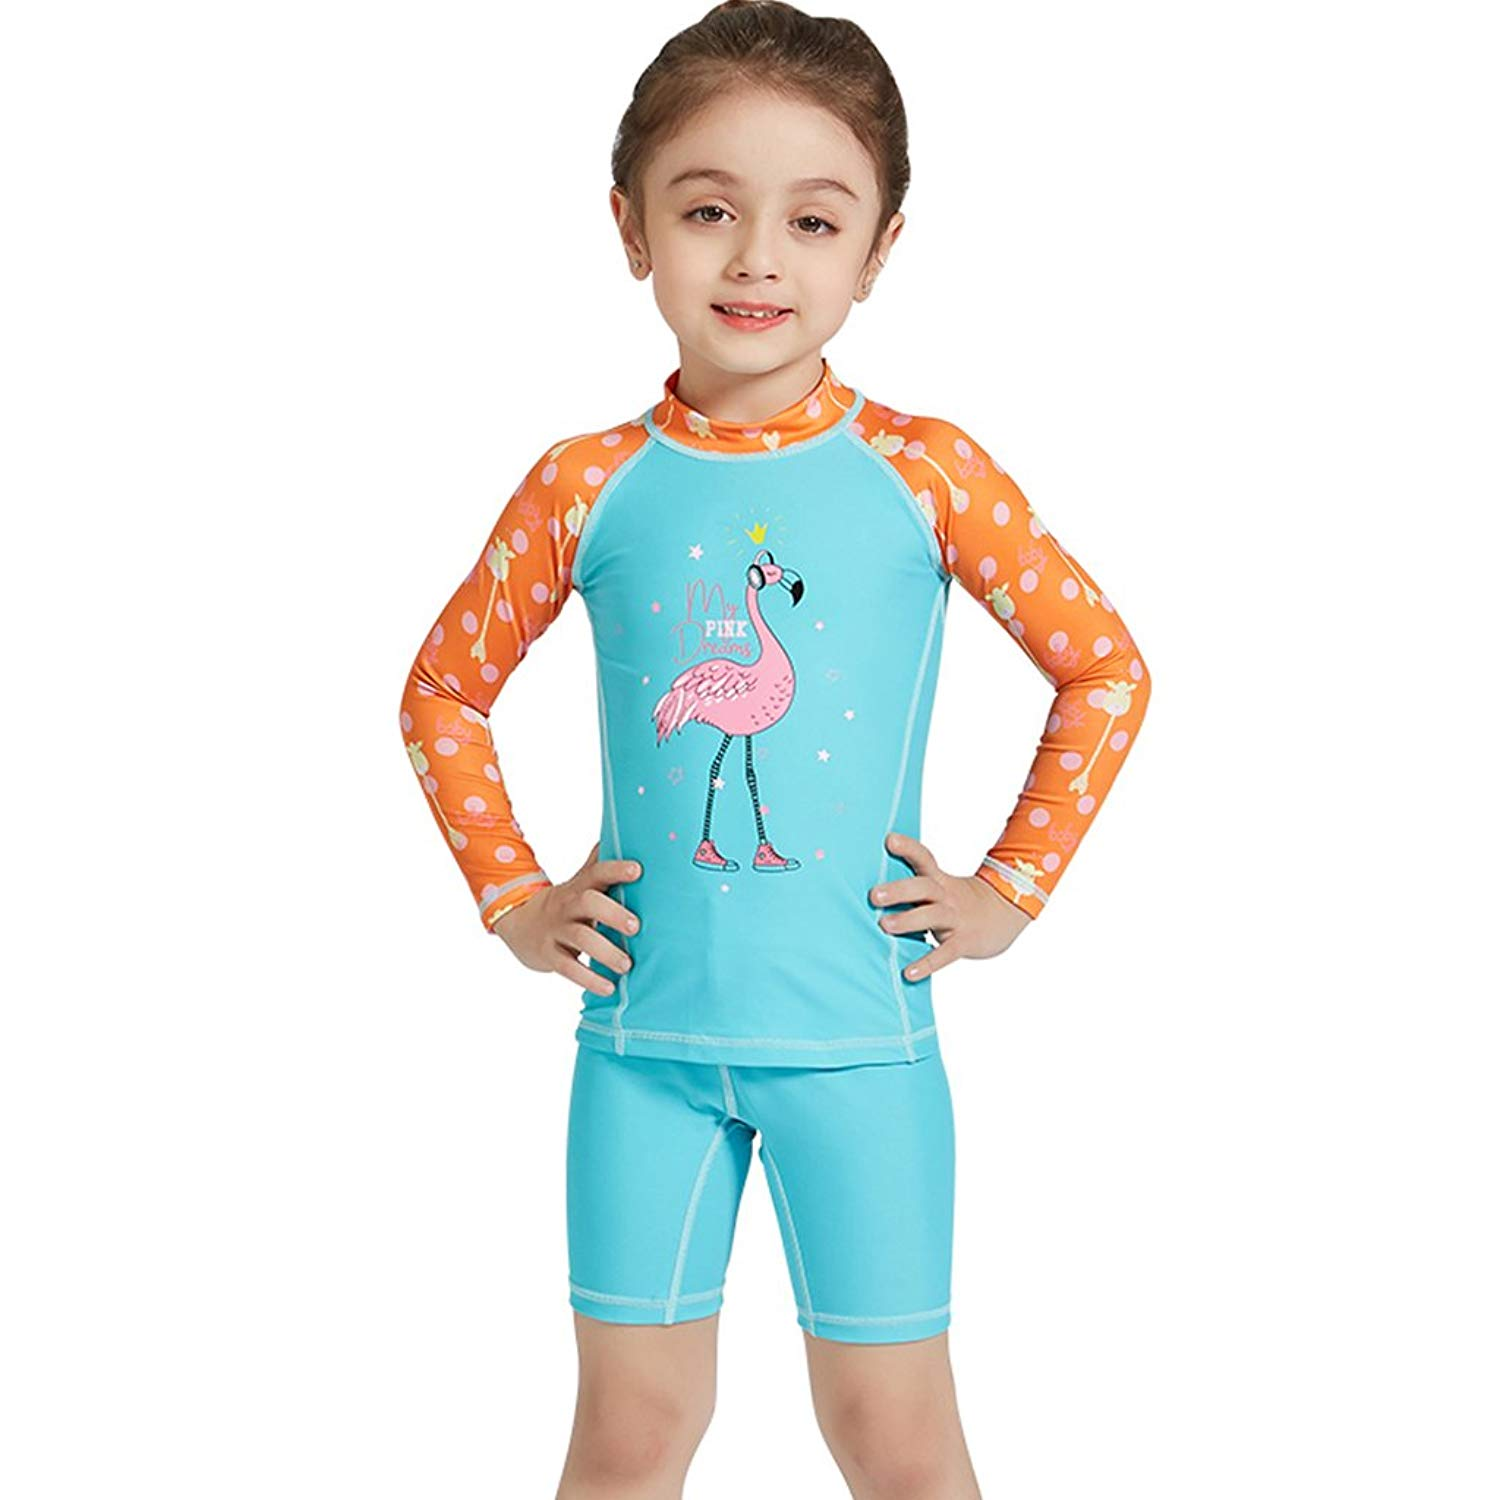 efb5541303 Get Quotations · Gogokids Girls Two-Piece Swimsuit Swimwear - Kids Long Sleeves  Wetsuits Diving Suits